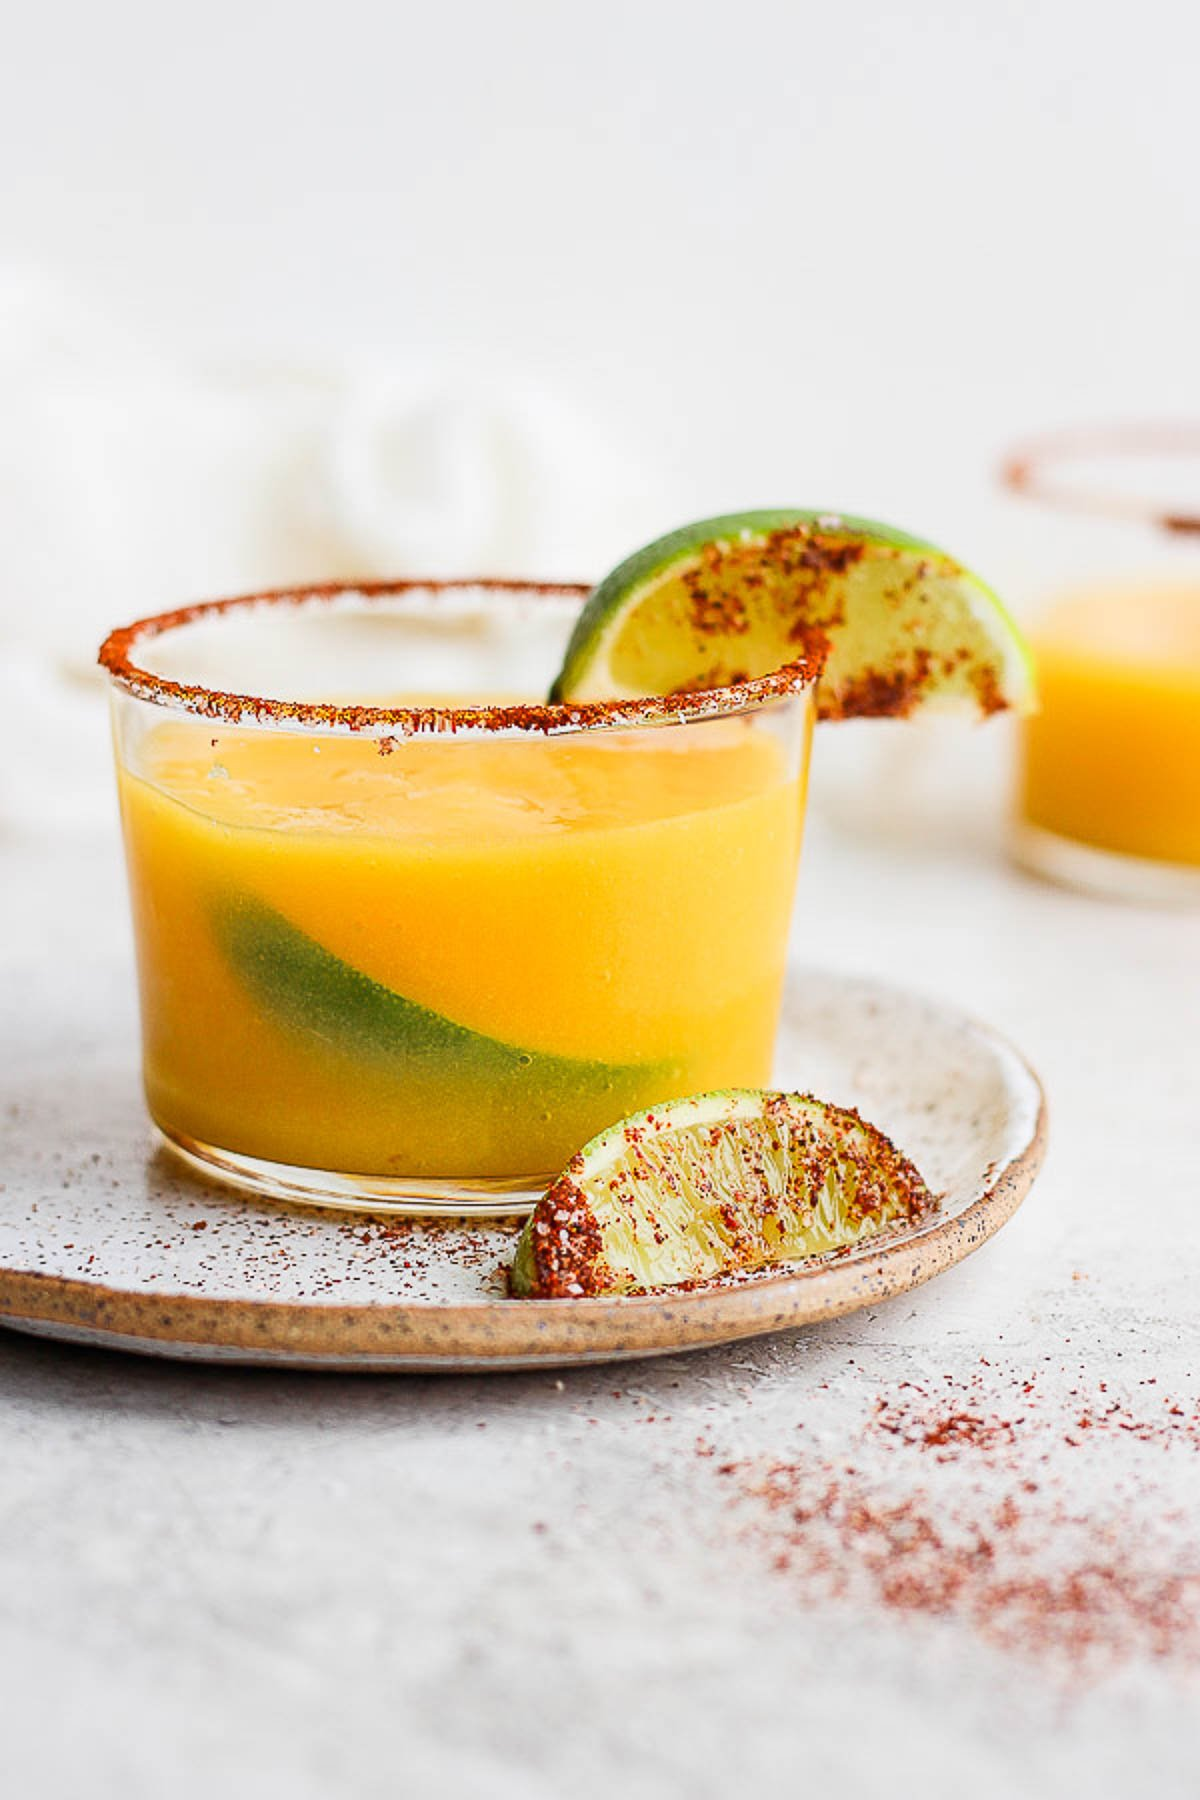 Mango Margarita in a glass with a chili lime rim and fresh lime.